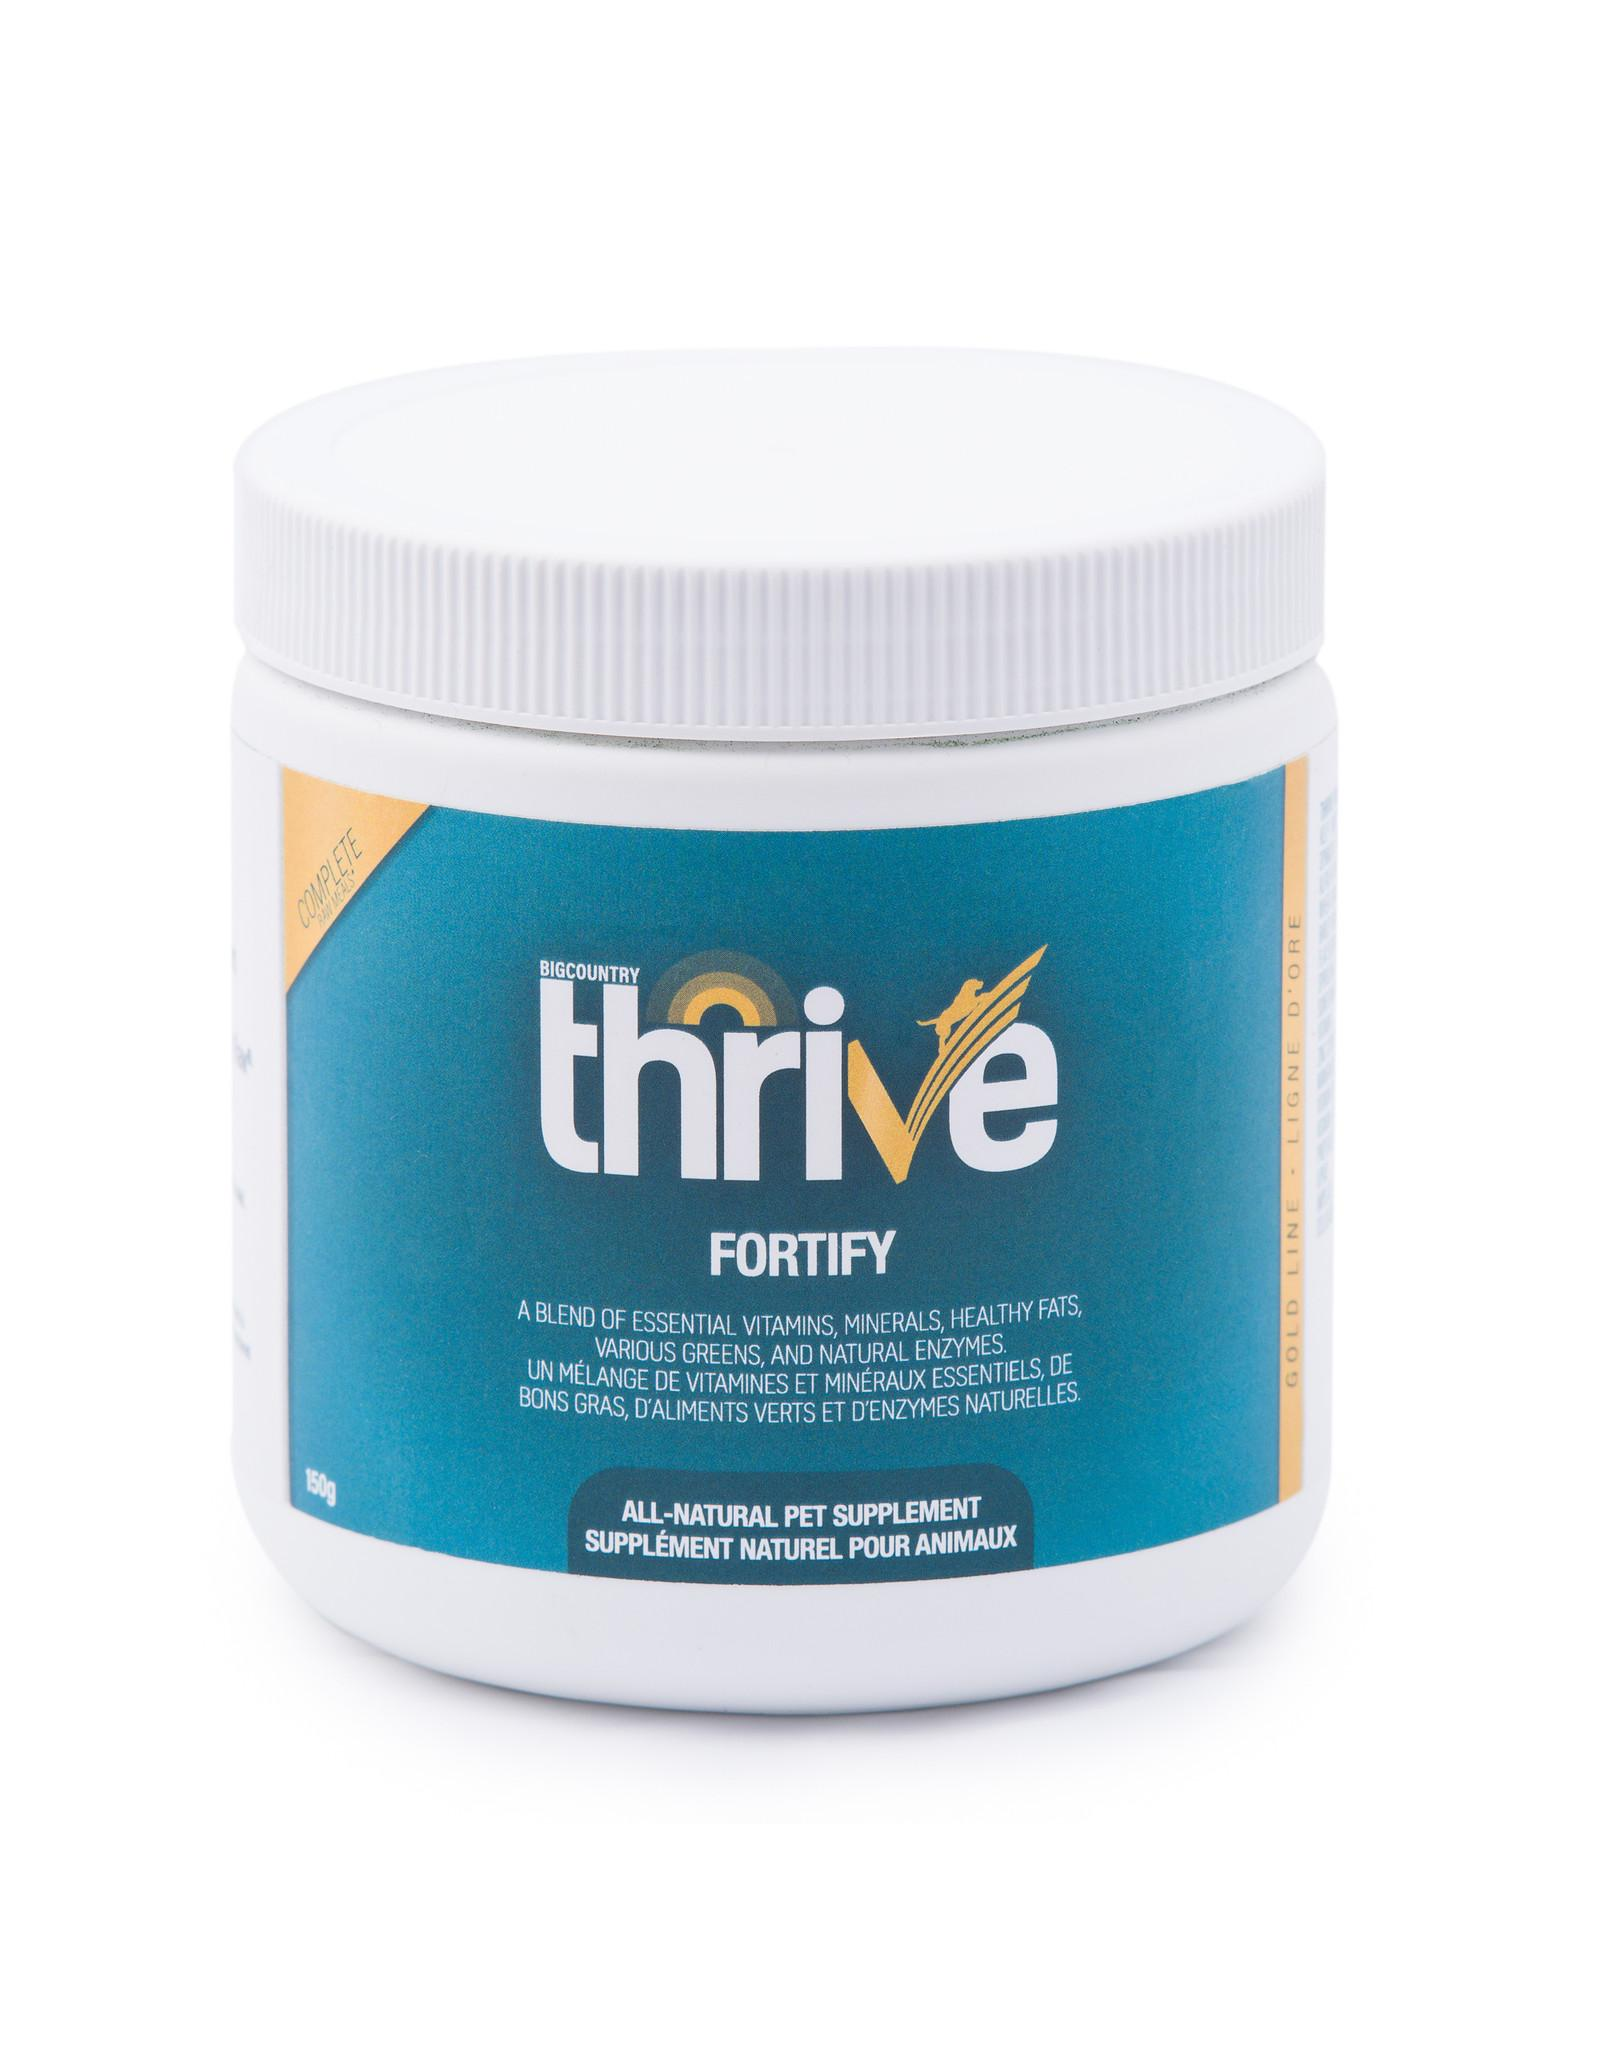 Thrive Gold Line Fortify Dog & Cat Supplement Image